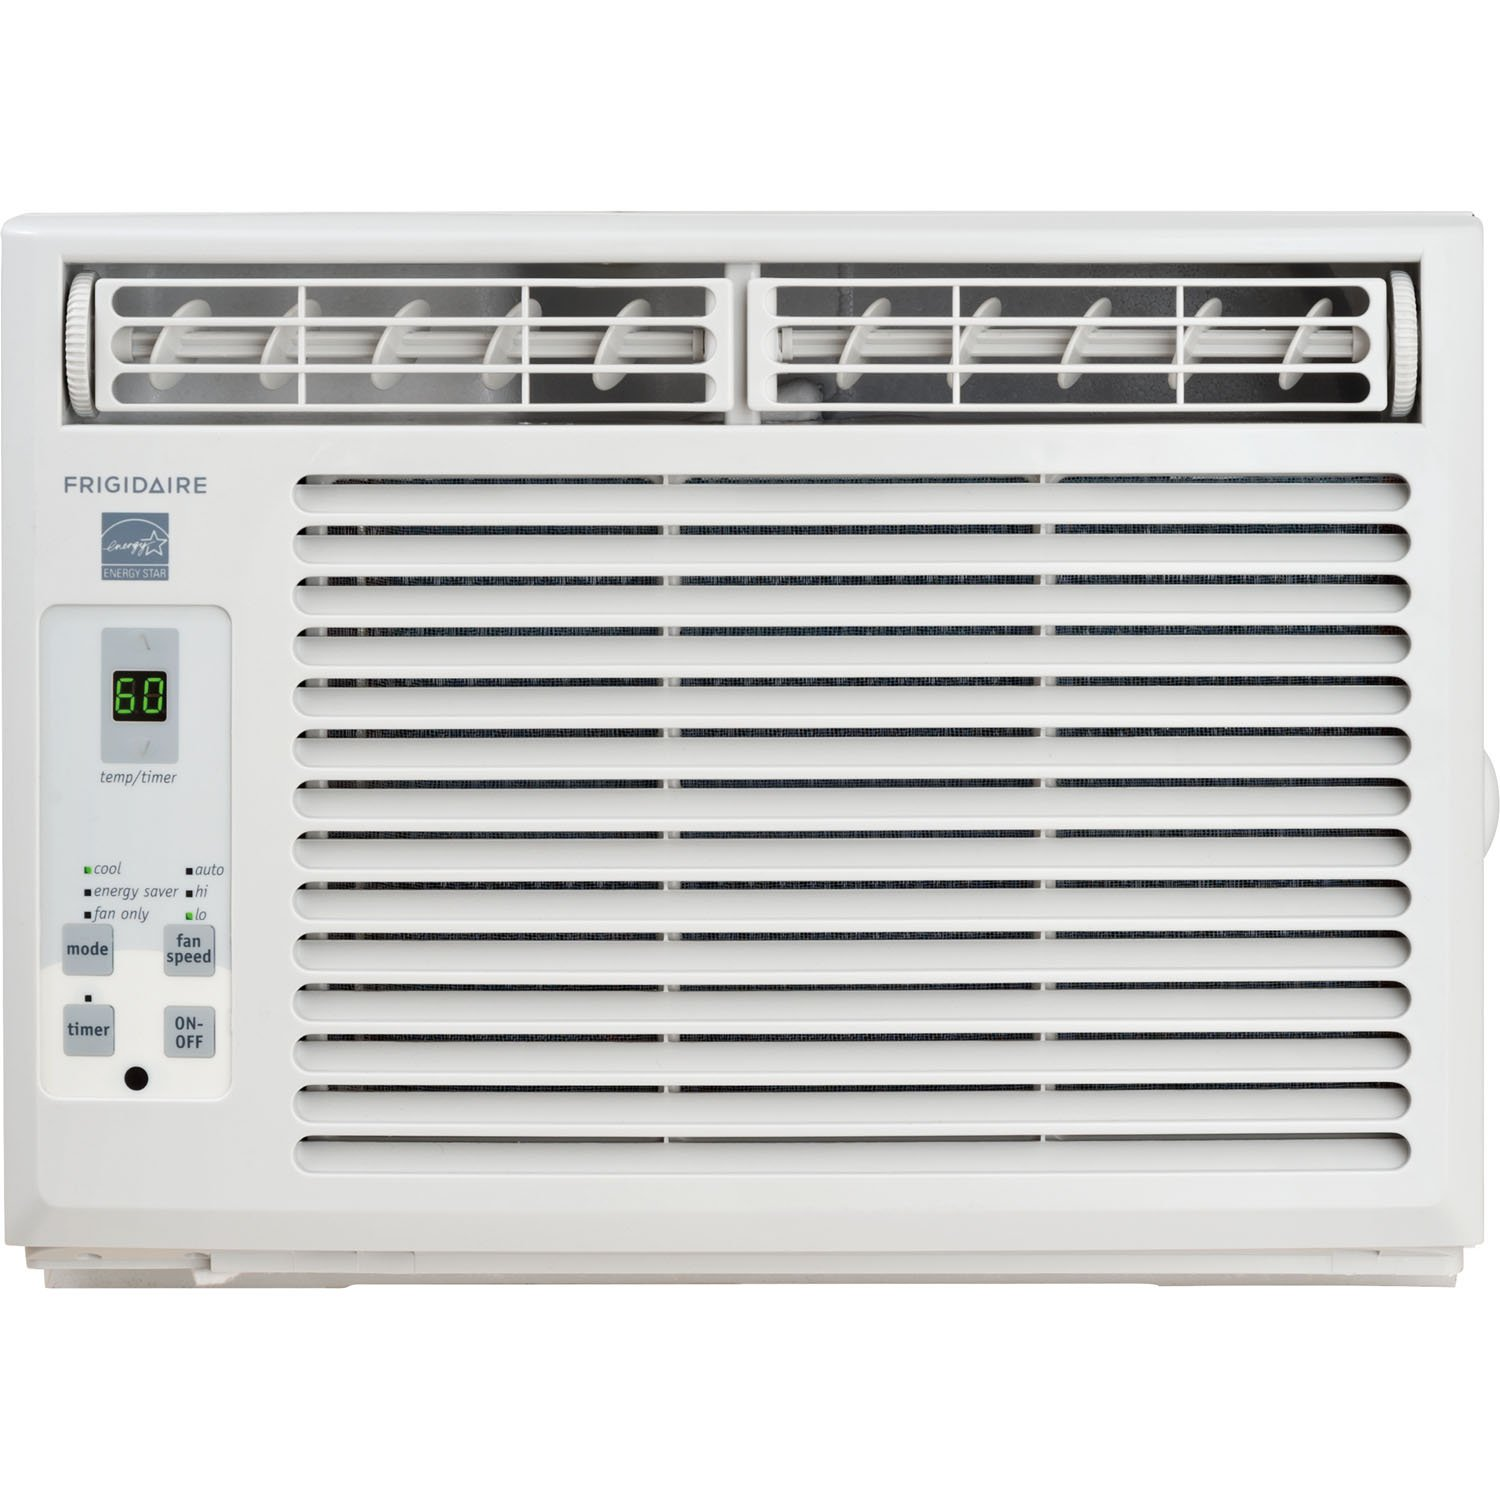 Amazon com  Frigidaire 5 000 BTU 115V Window Mounted Mini Compact Air  Conditioner with Full Function Remote Control  Home   Kitchen. Amazon com  Frigidaire 5 000 BTU 115V Window Mounted Mini Compact